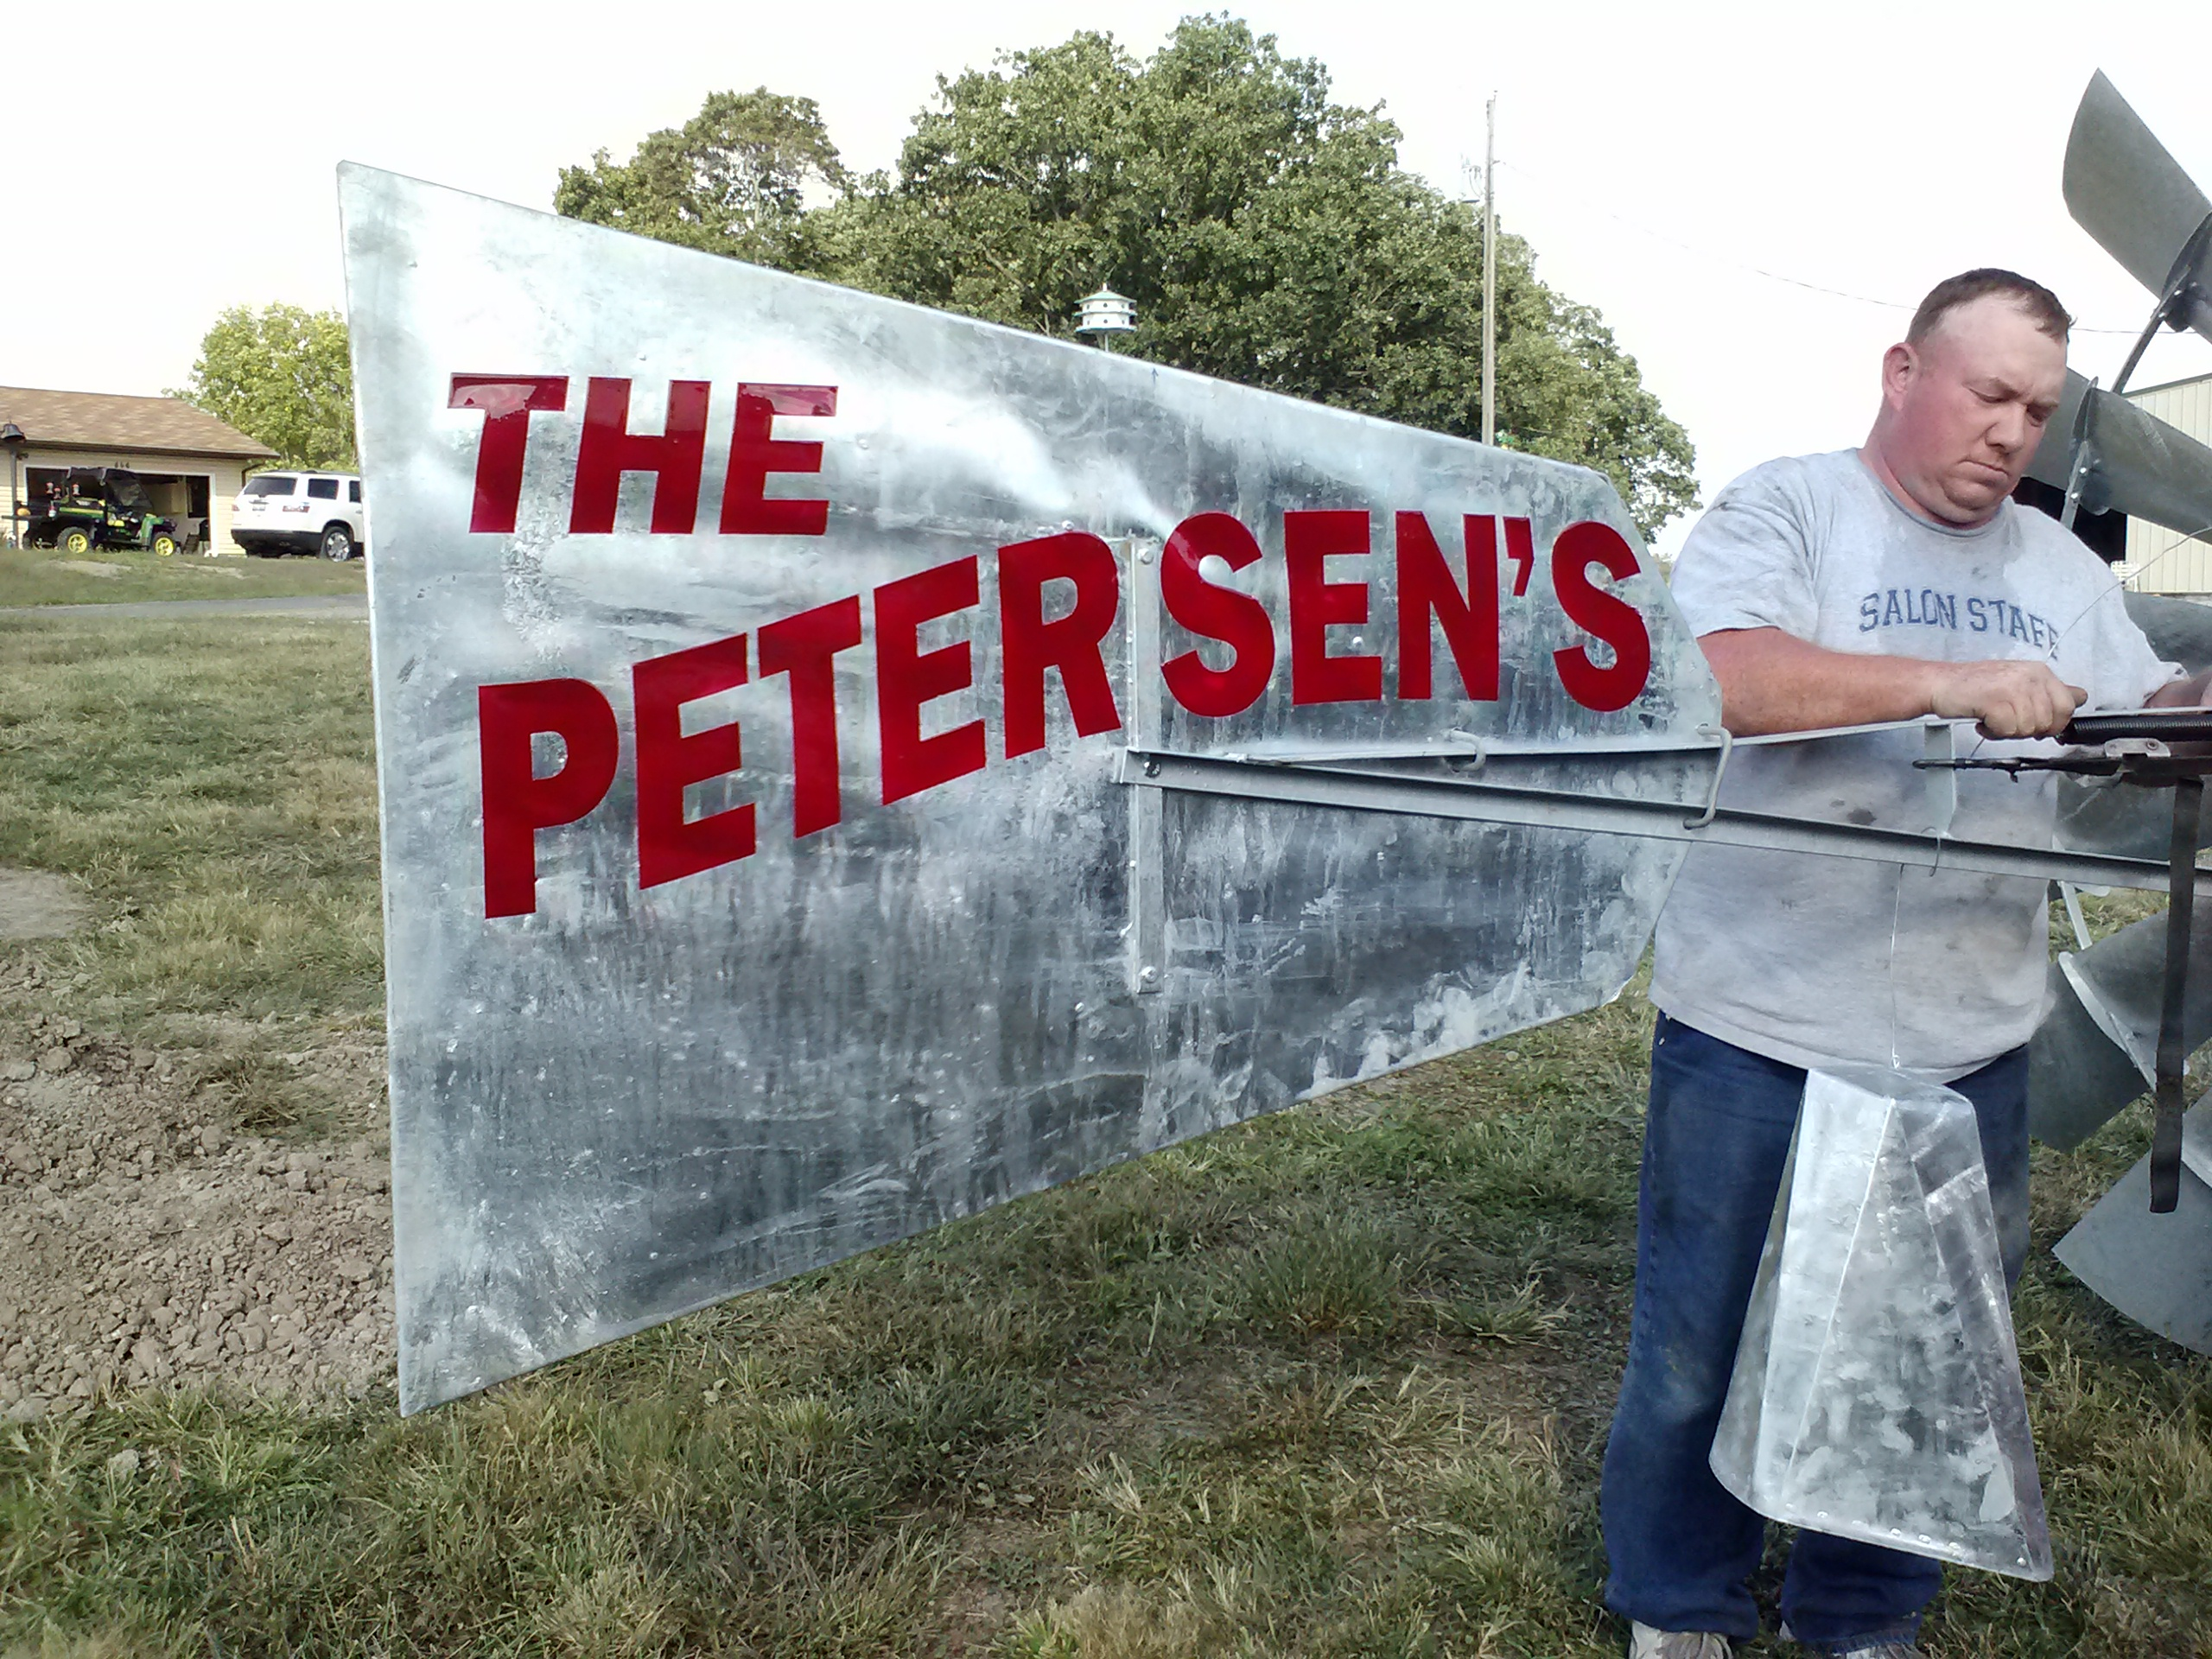 Petersen's tail